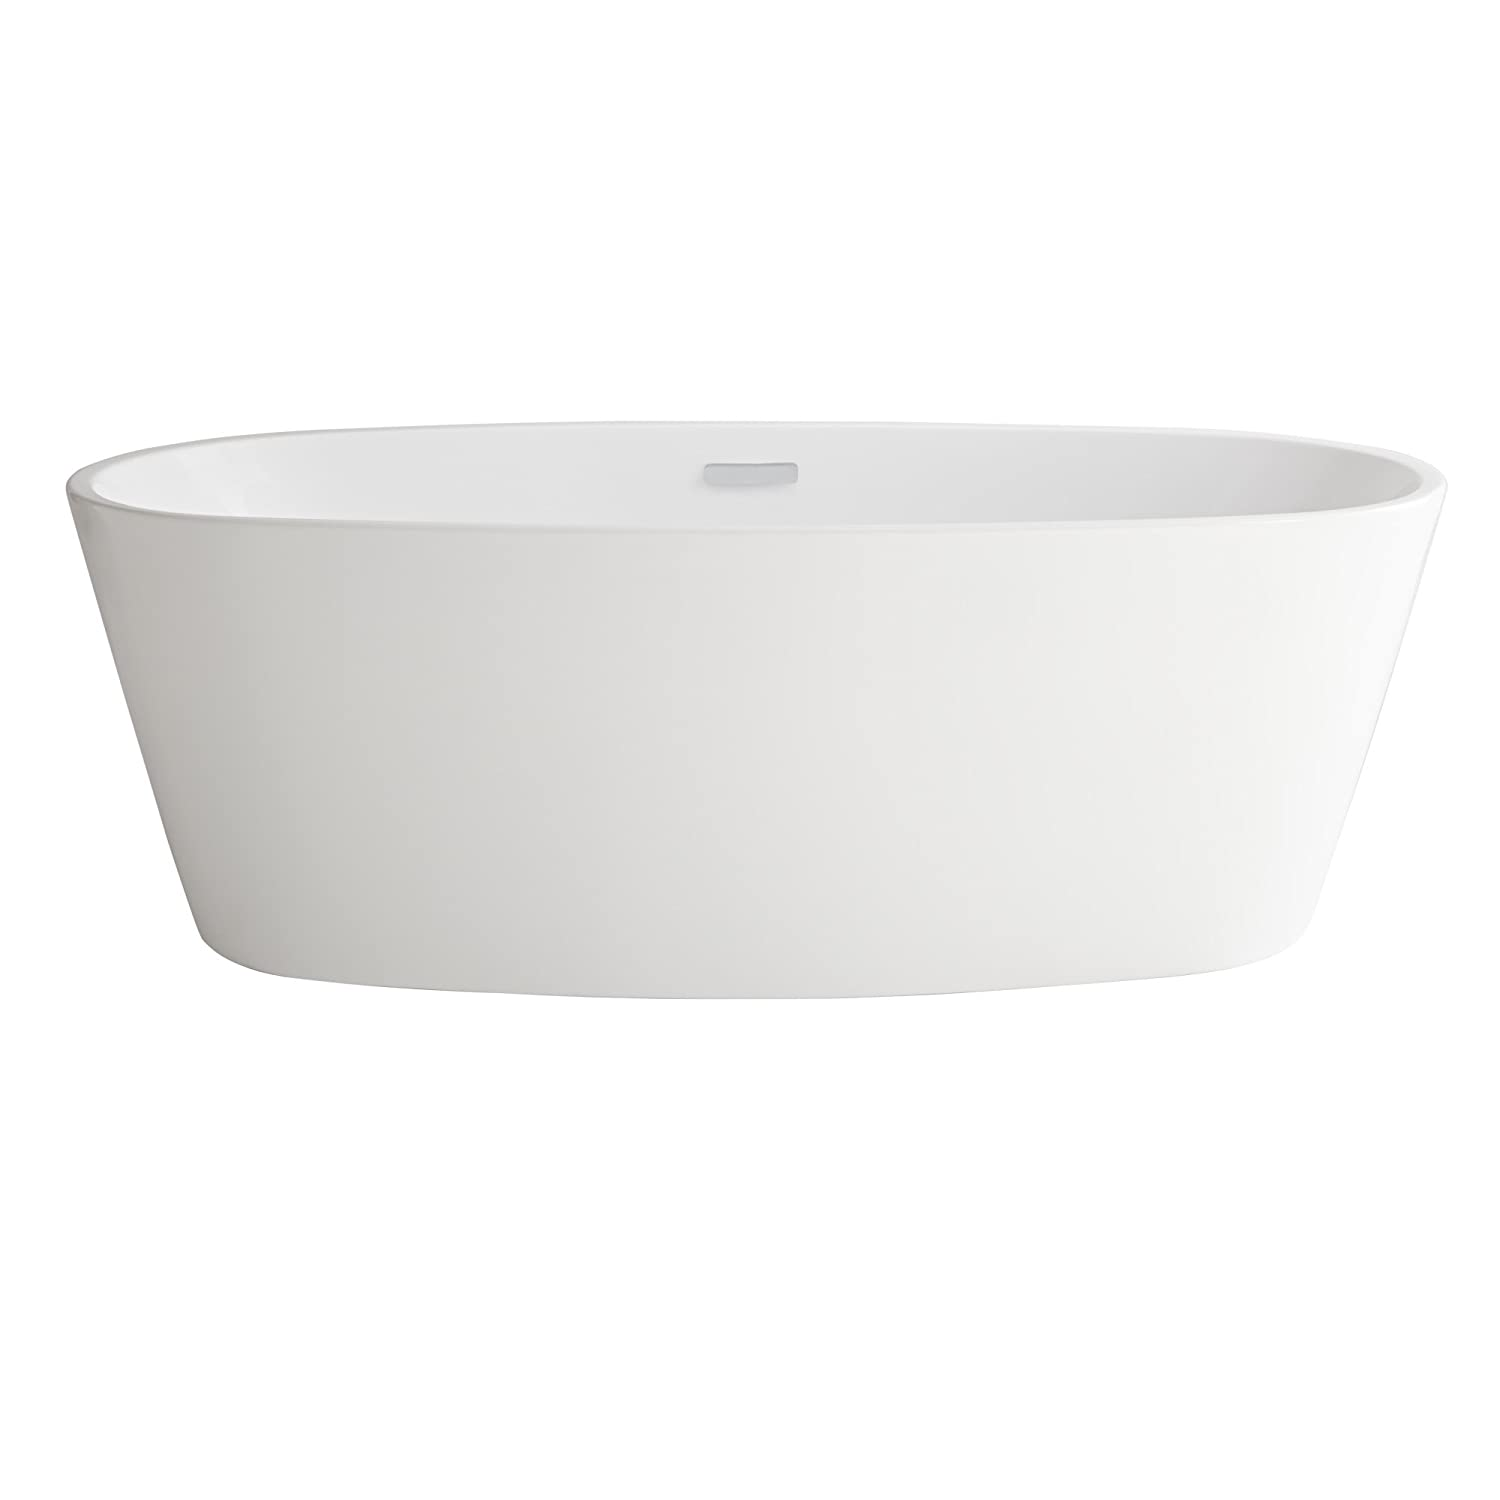 soaking vertical wiki in american standard tub roca walk bathtub freestanding